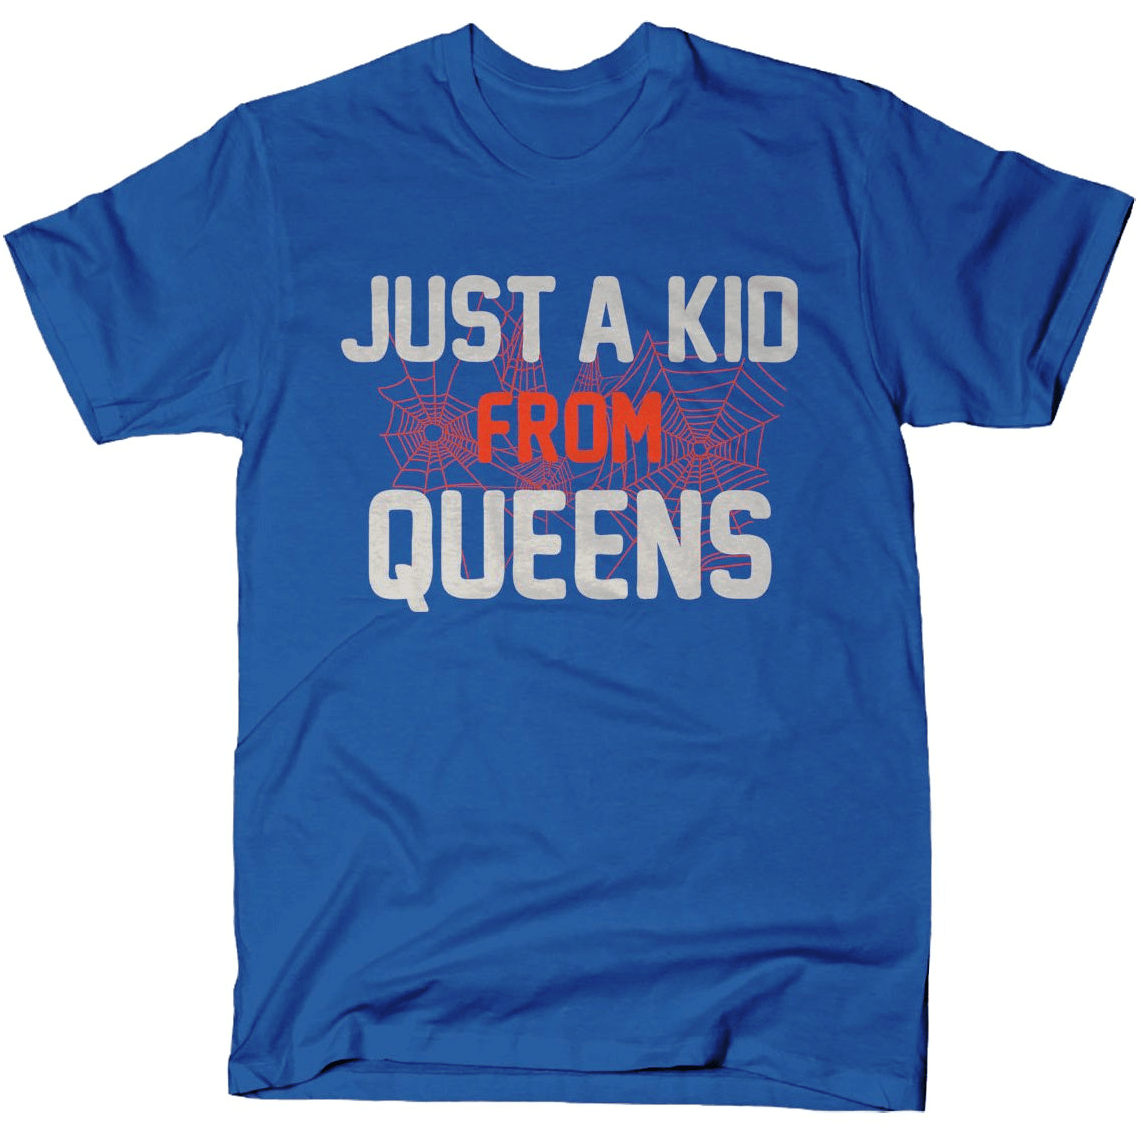 Just A Kid From Queens shirt Snorgtees Clothing/Accessories